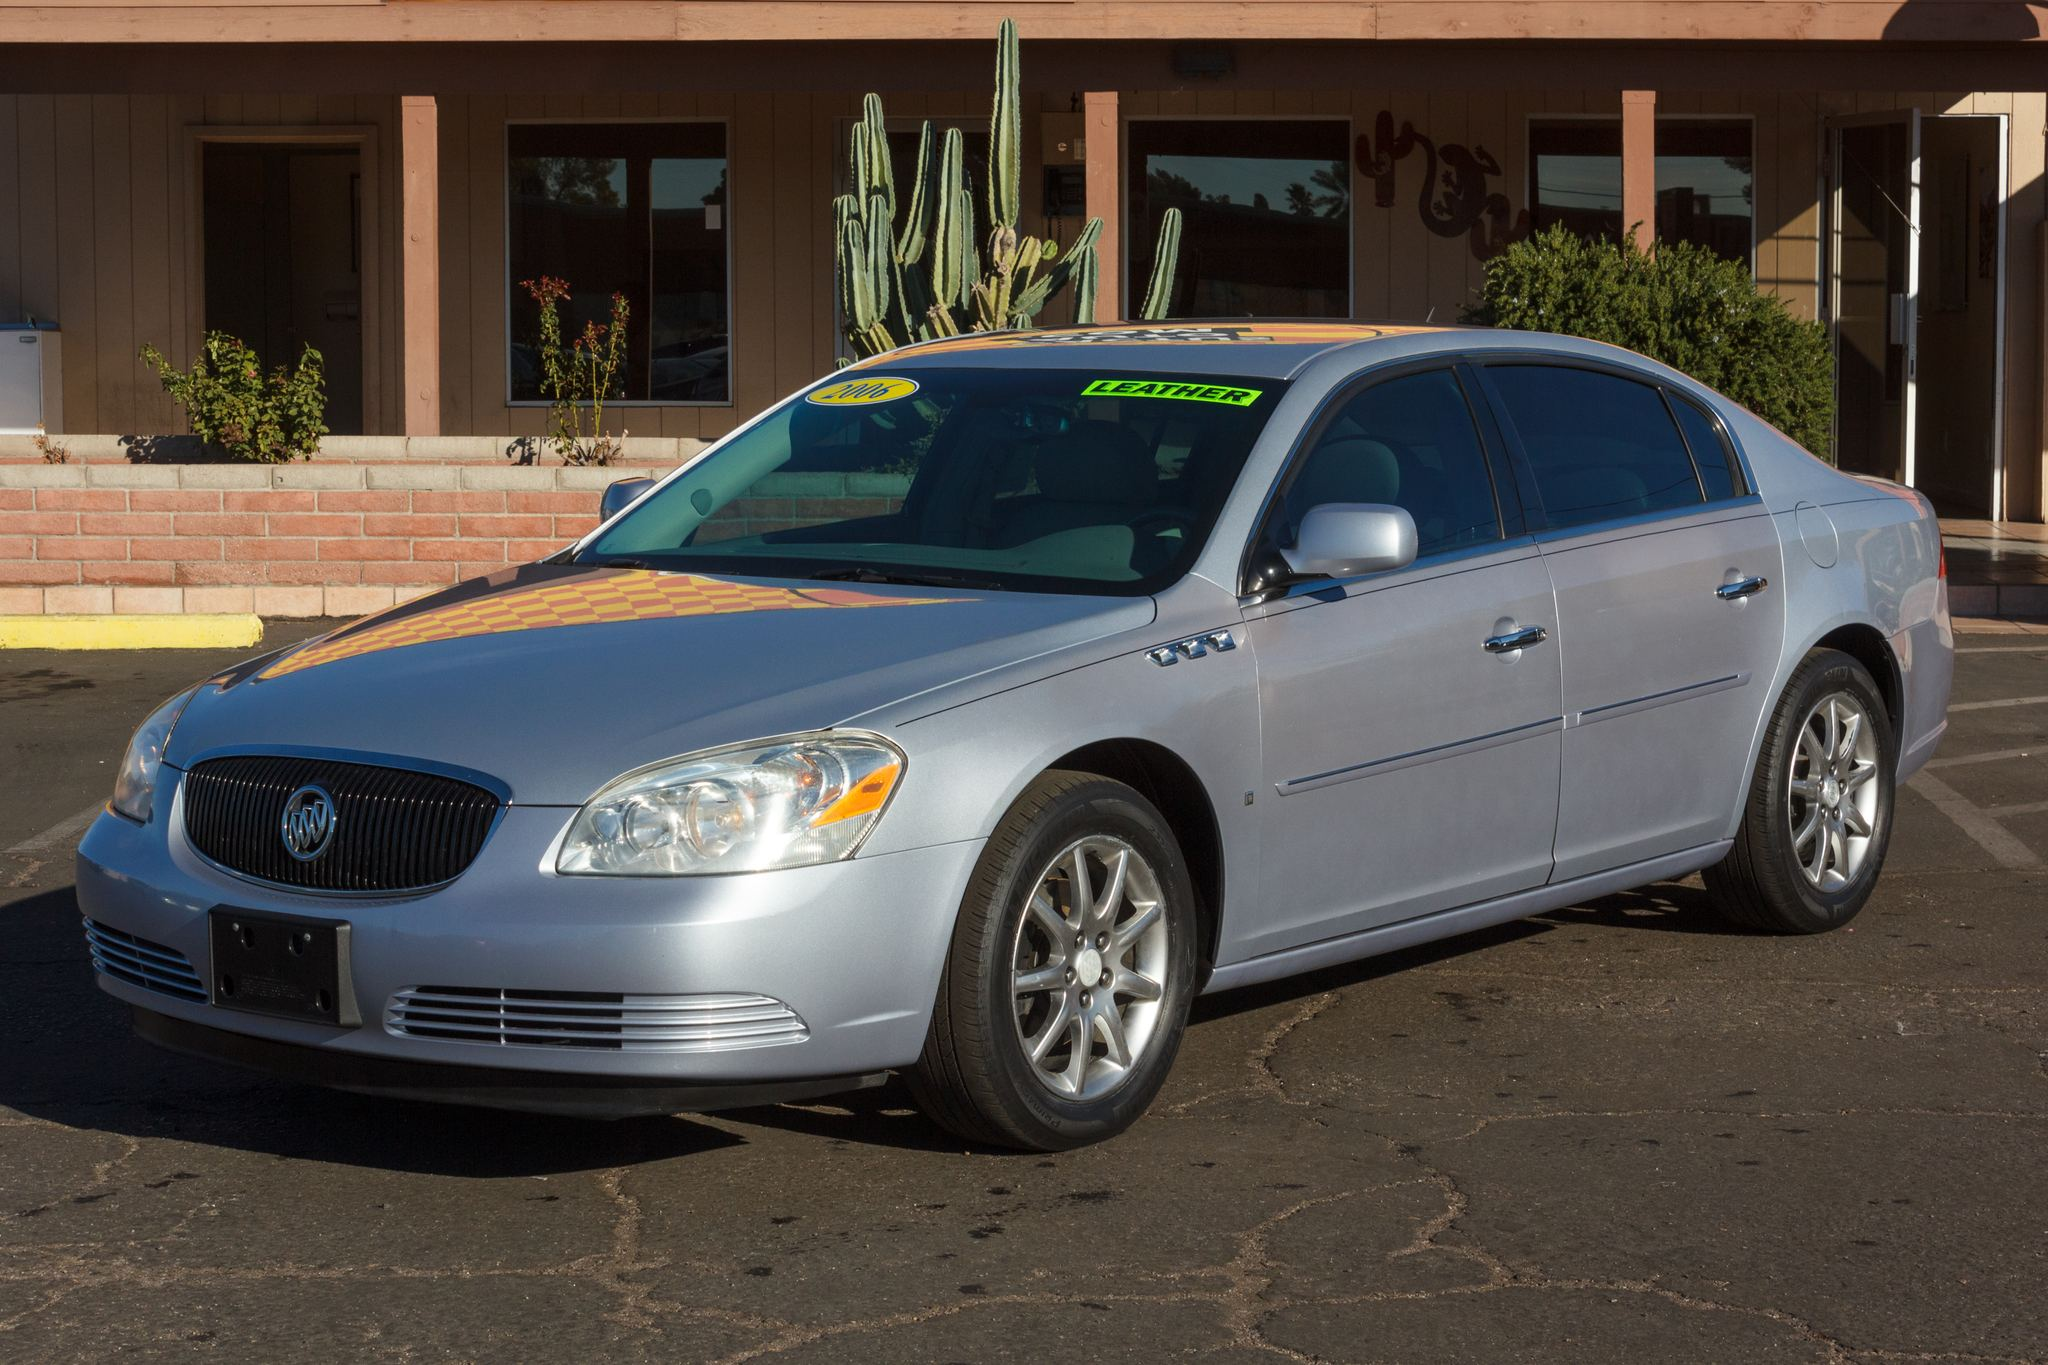 Photo of 2006 Buick Lucerne 4d Sedan CXL